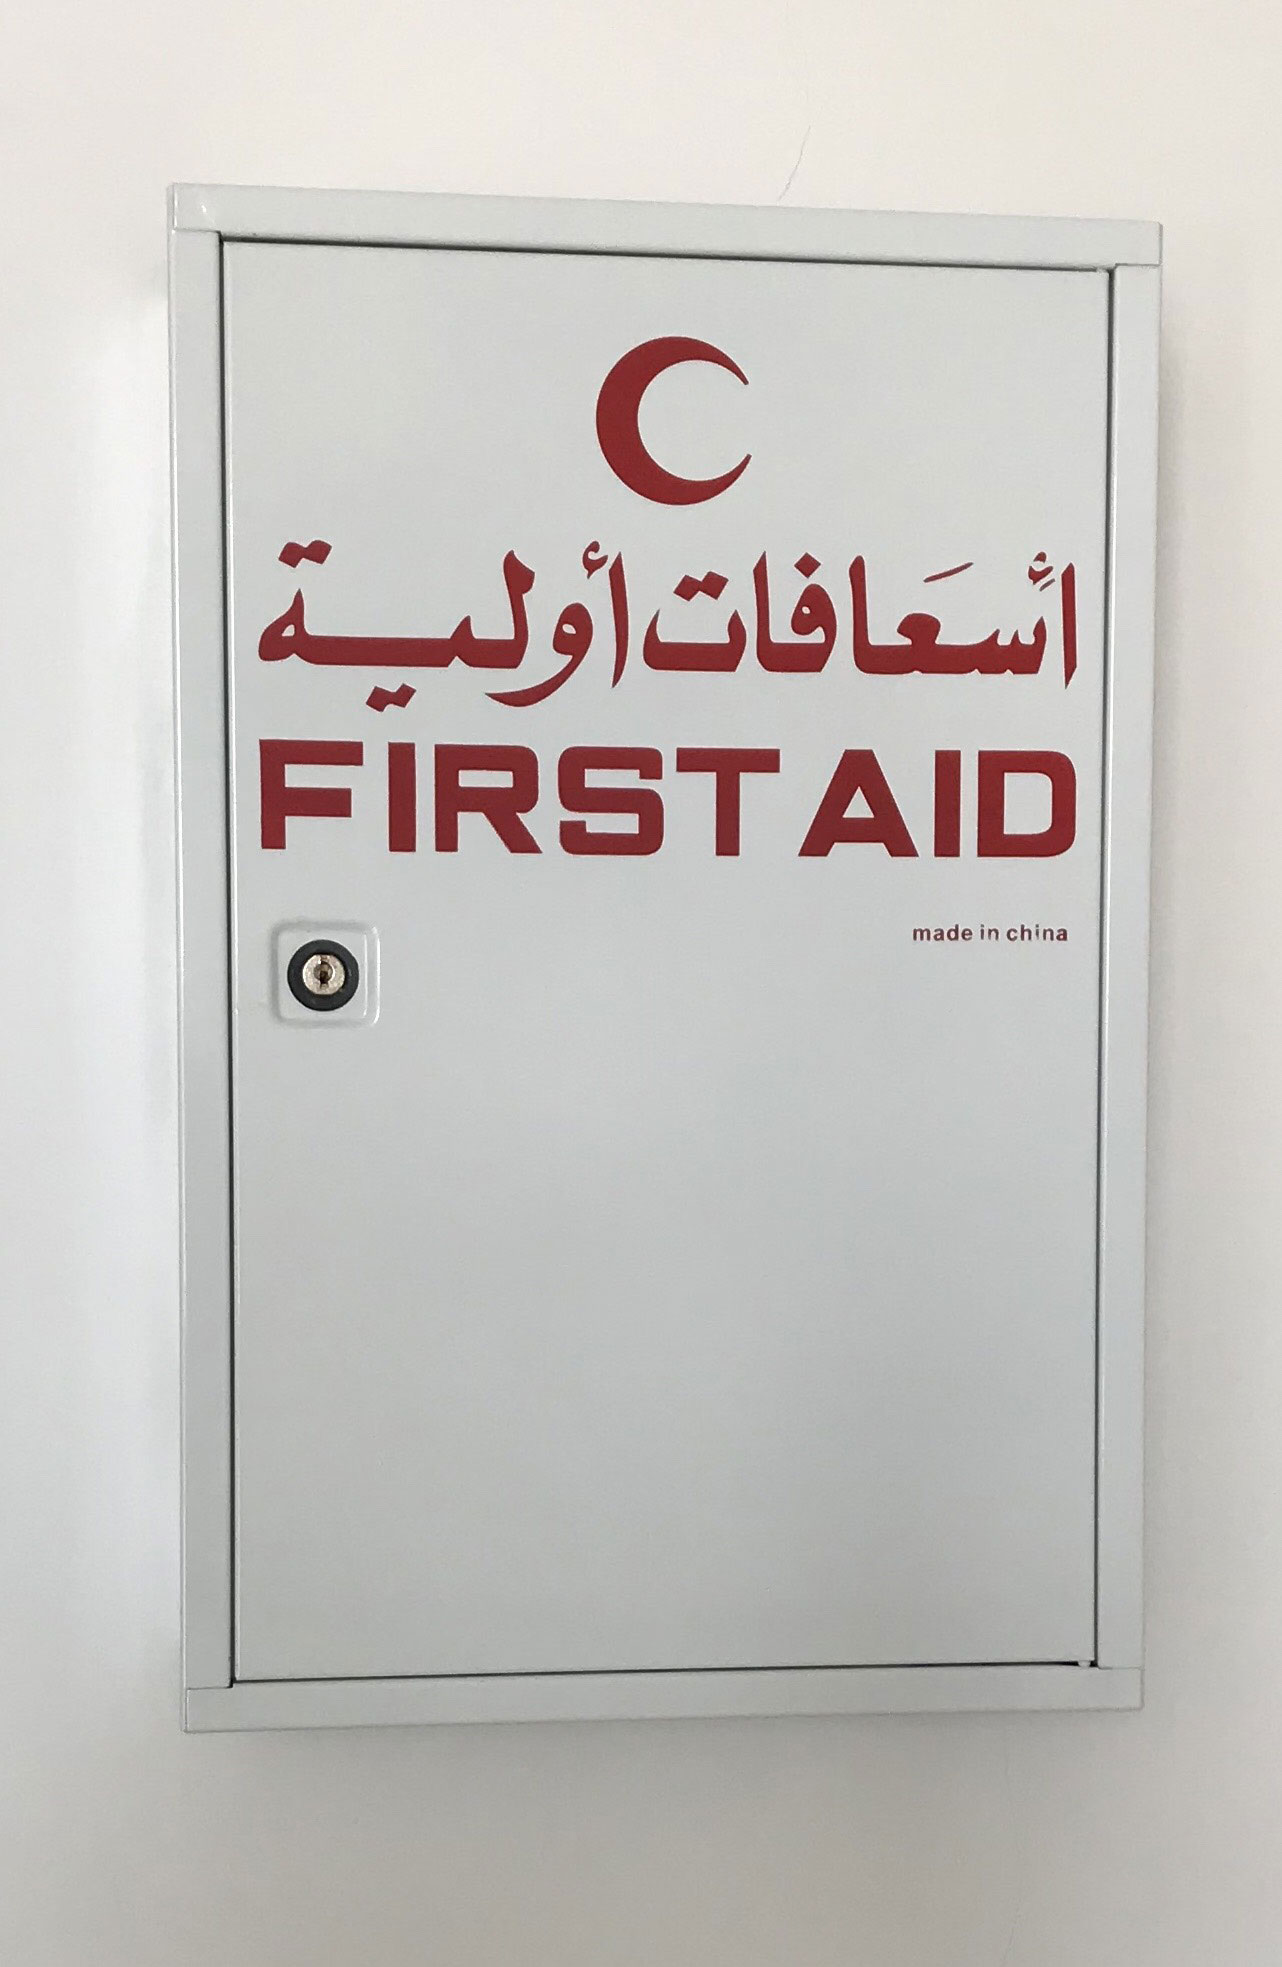 KUST checked all the first aid boxes in the university with its requirements